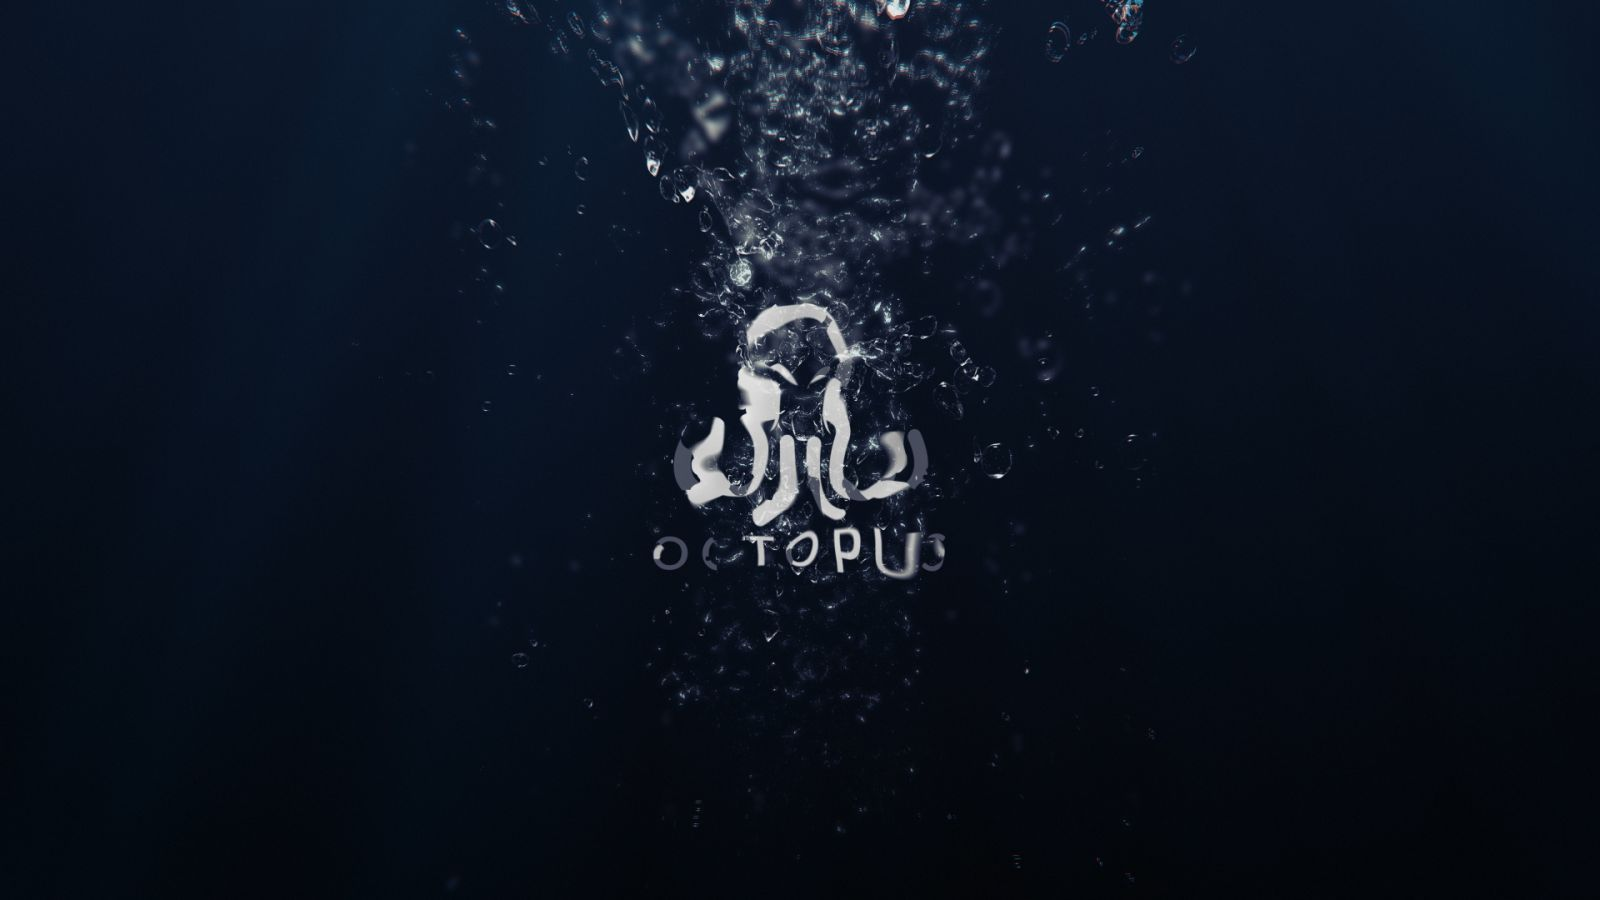 Underwater Logo Reveal